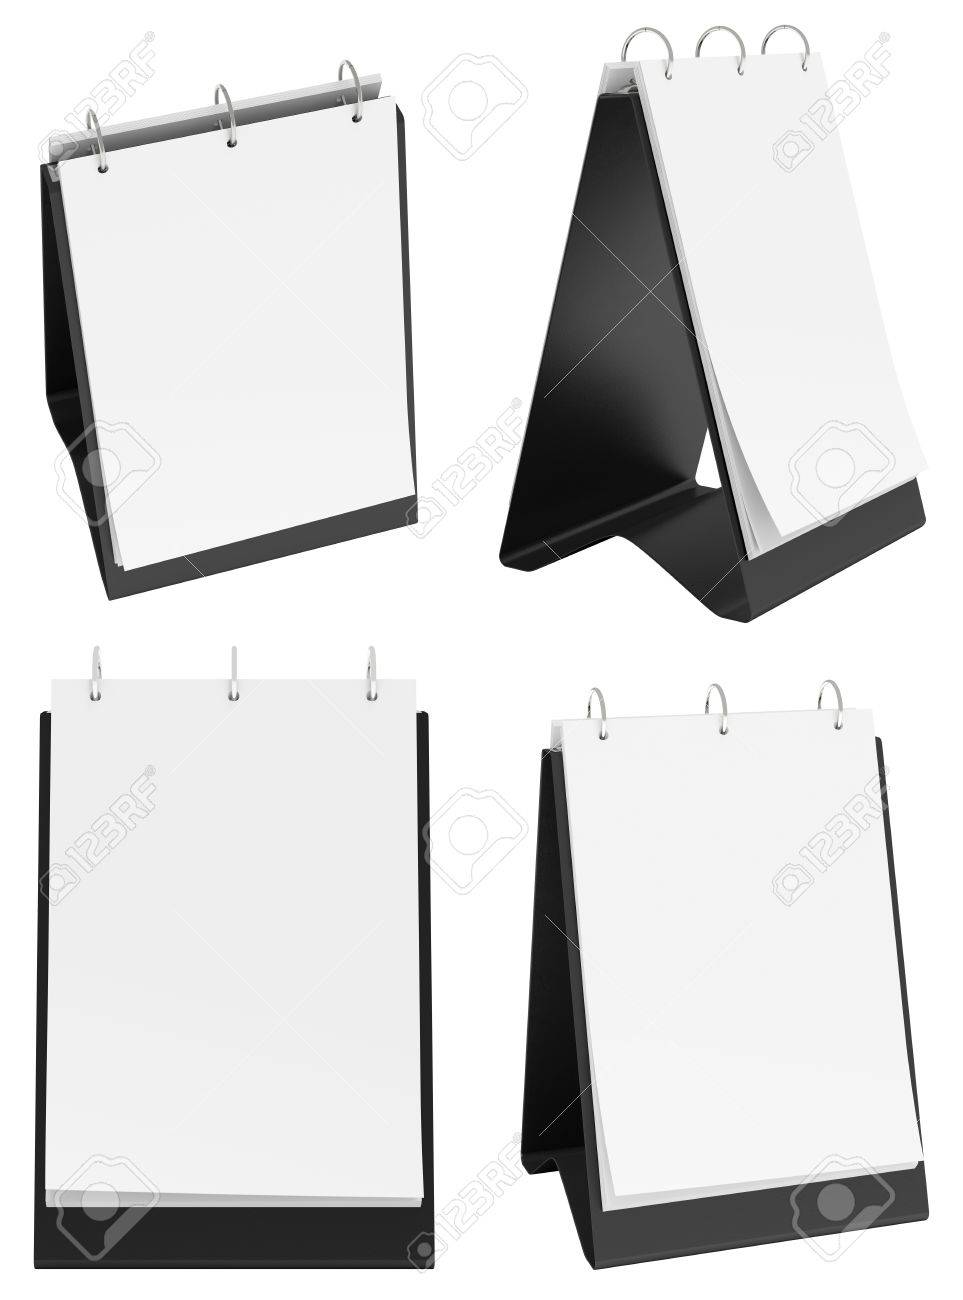 set of blank portrait table top flip chart easel binder or calendar